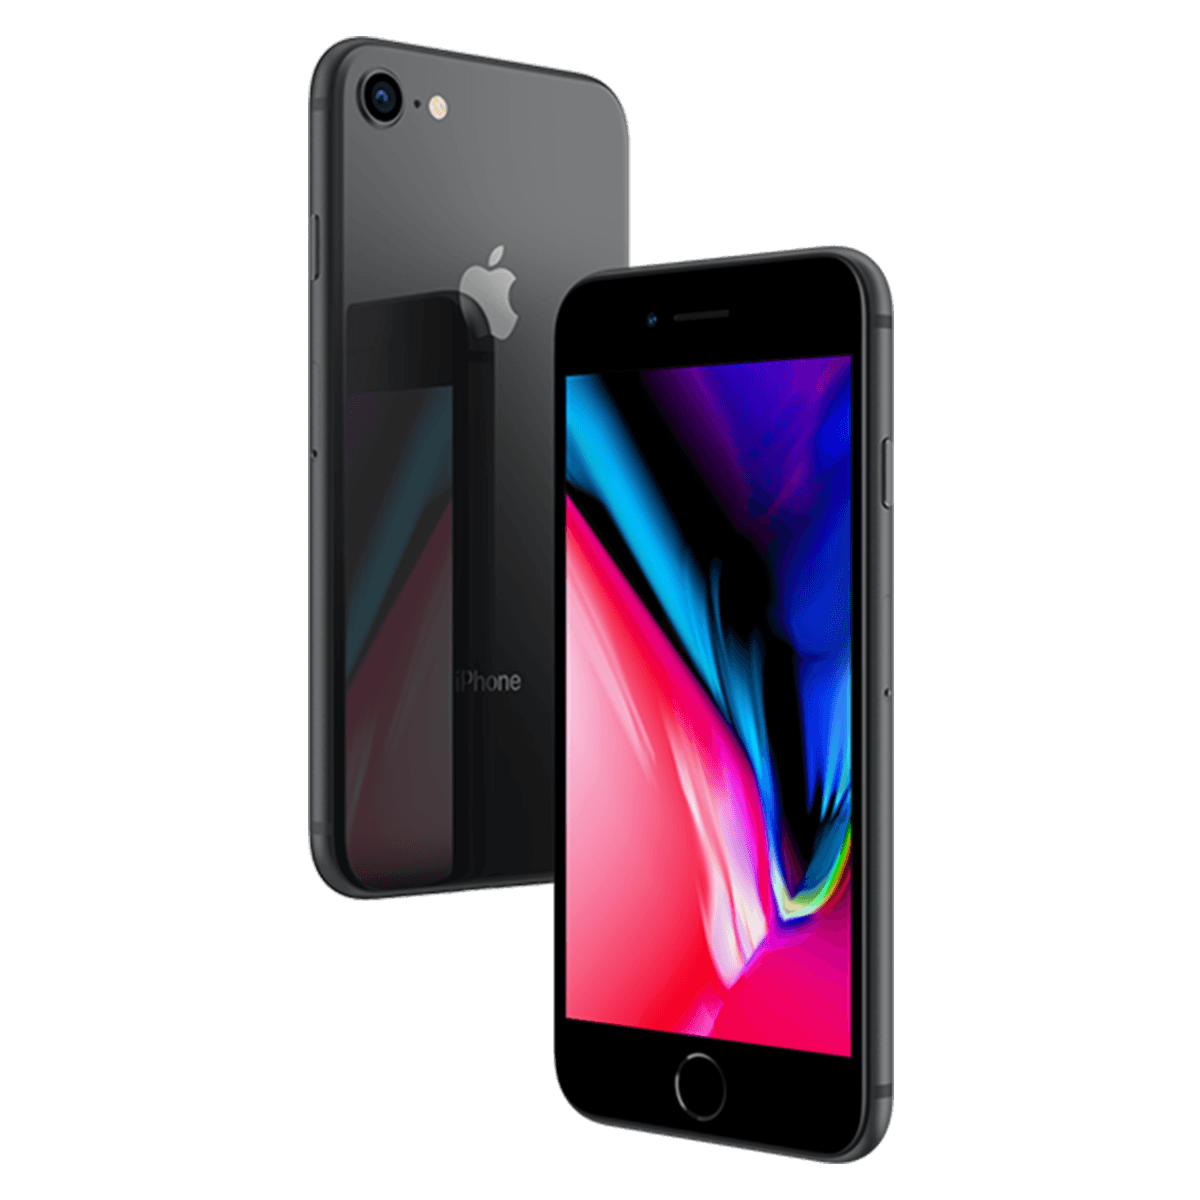 Apple iPhone 8 available from T-Mobile